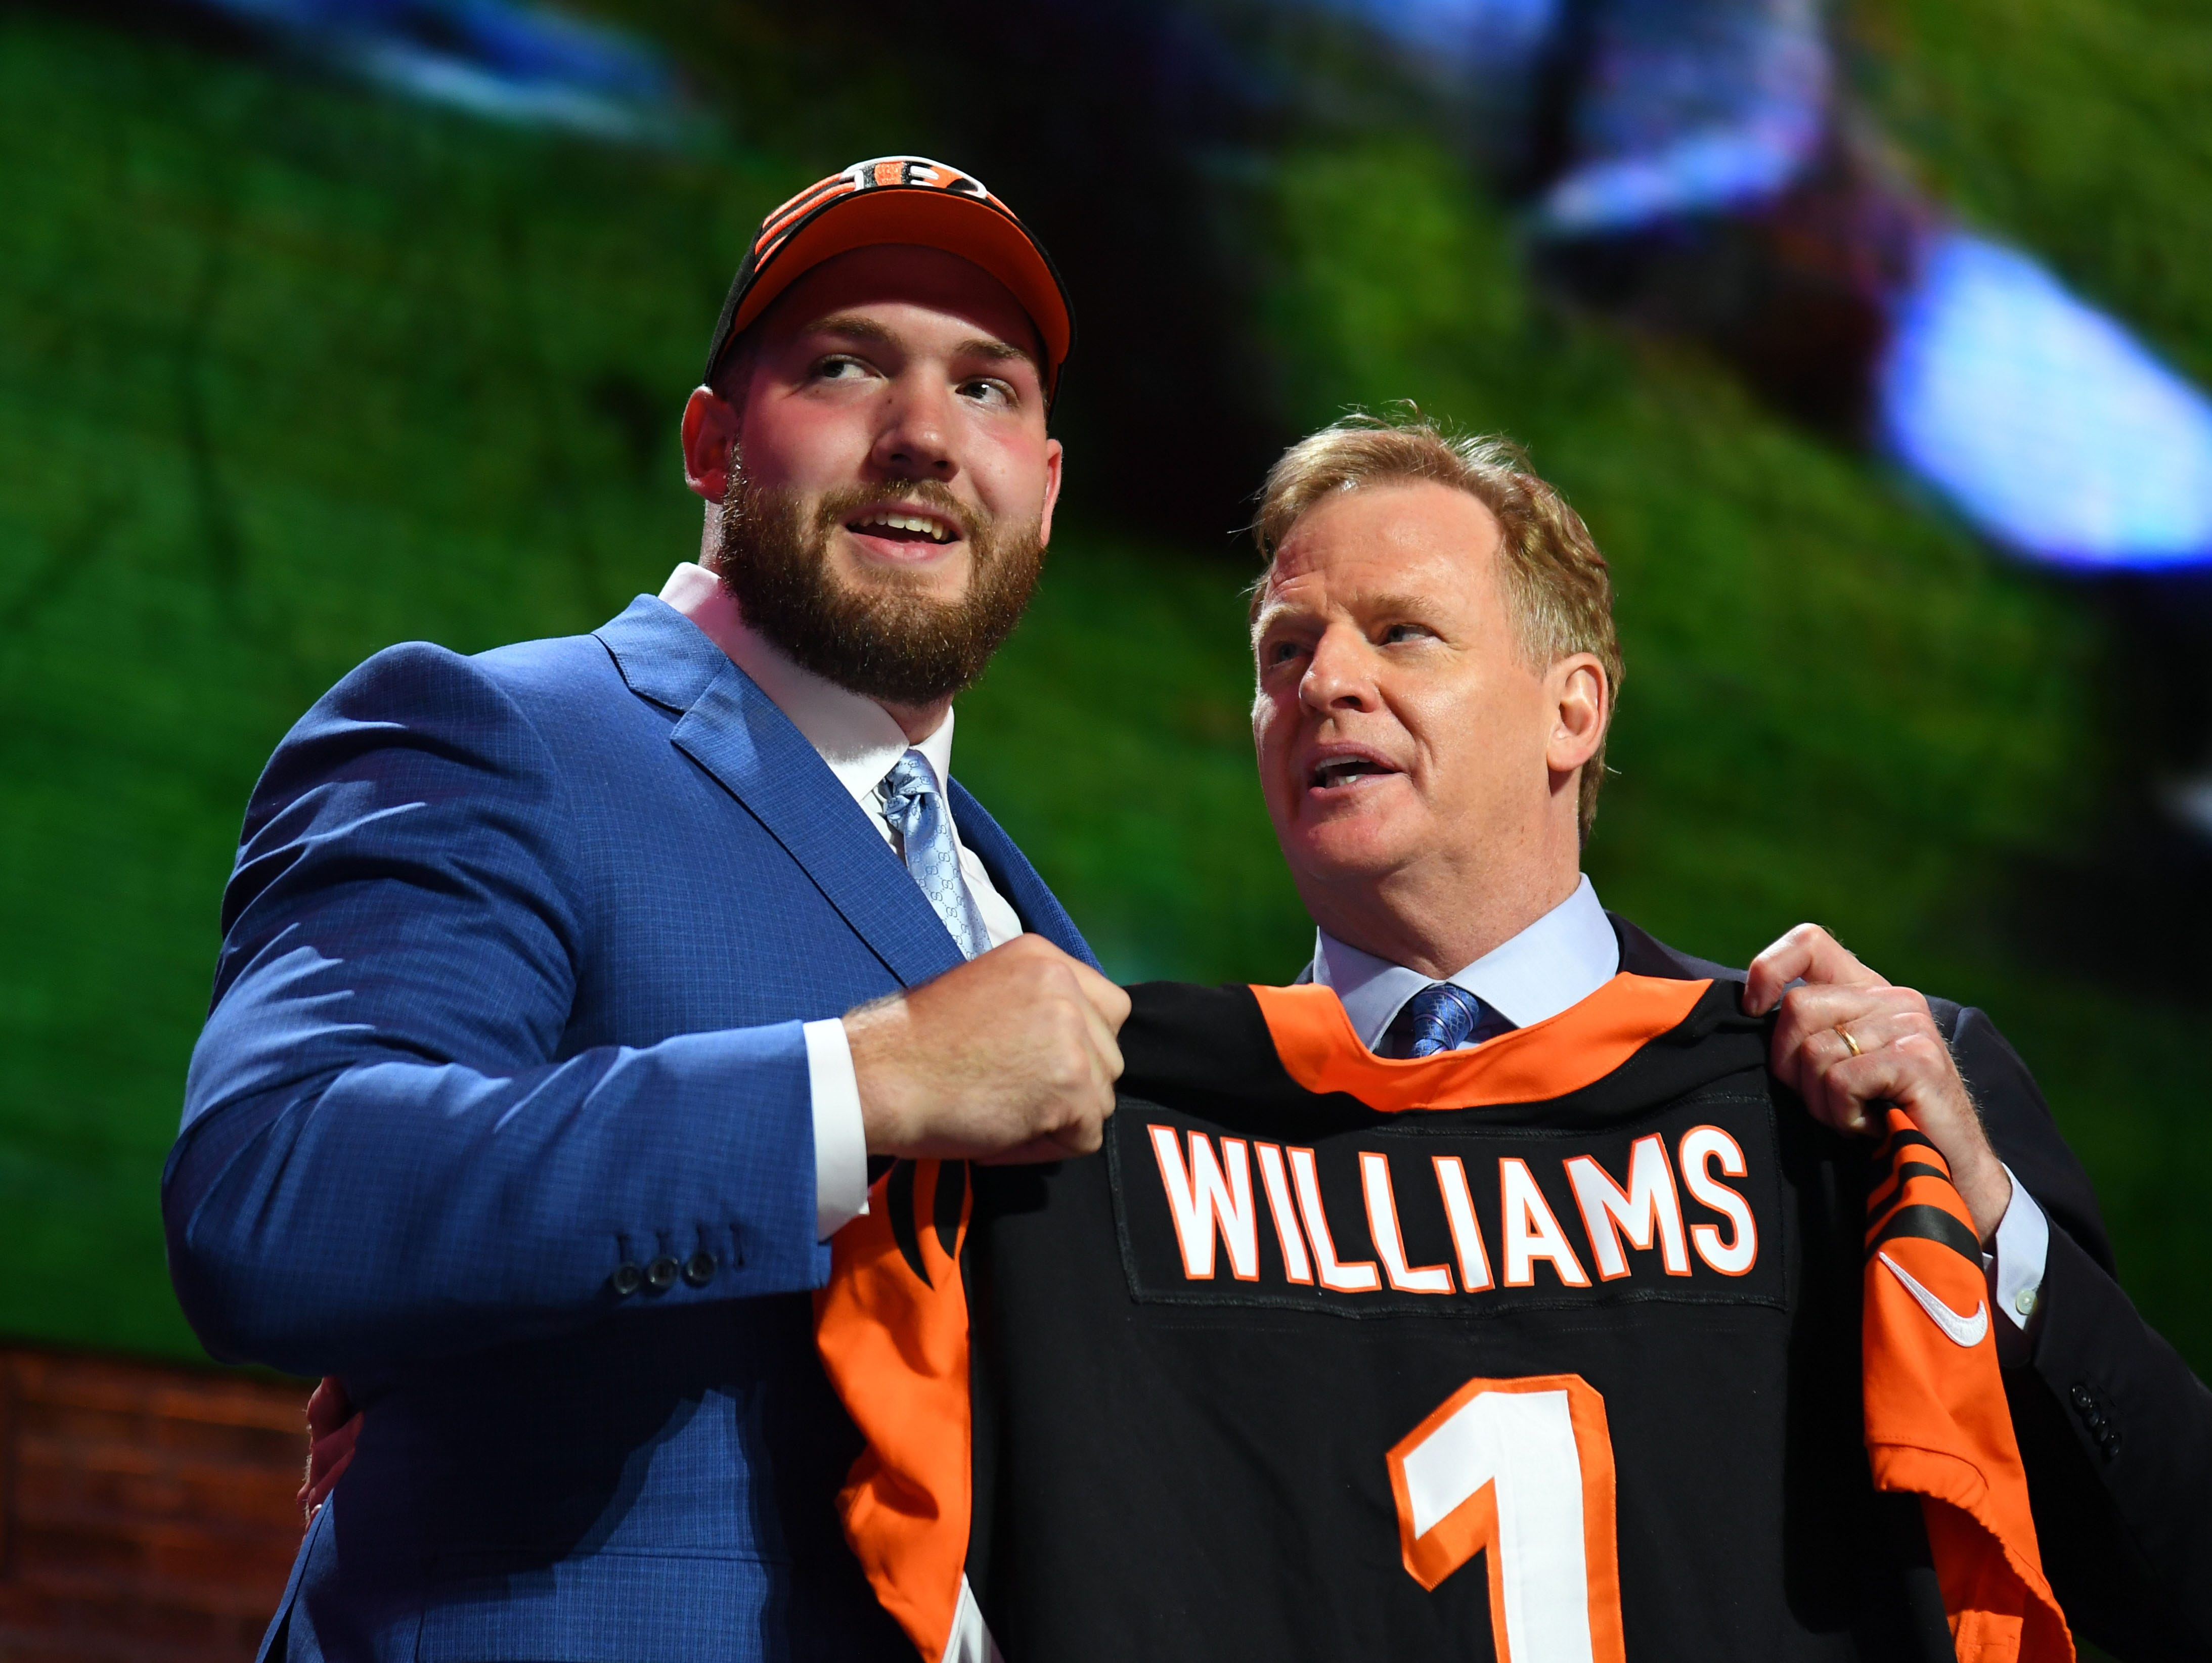 Apr 25, 2019; Nashville, TN, USA; Jonah Williams (Alabama) stands with NFL commissioner Roger Goodell after he was selected as the number eleven overall pick to the Cincinnati Bengals in the first round of the 2019 NFL Draft in Downtown Nashville. Mandatory Credit: Christopher Hanewinckel-USA TODAY Sports